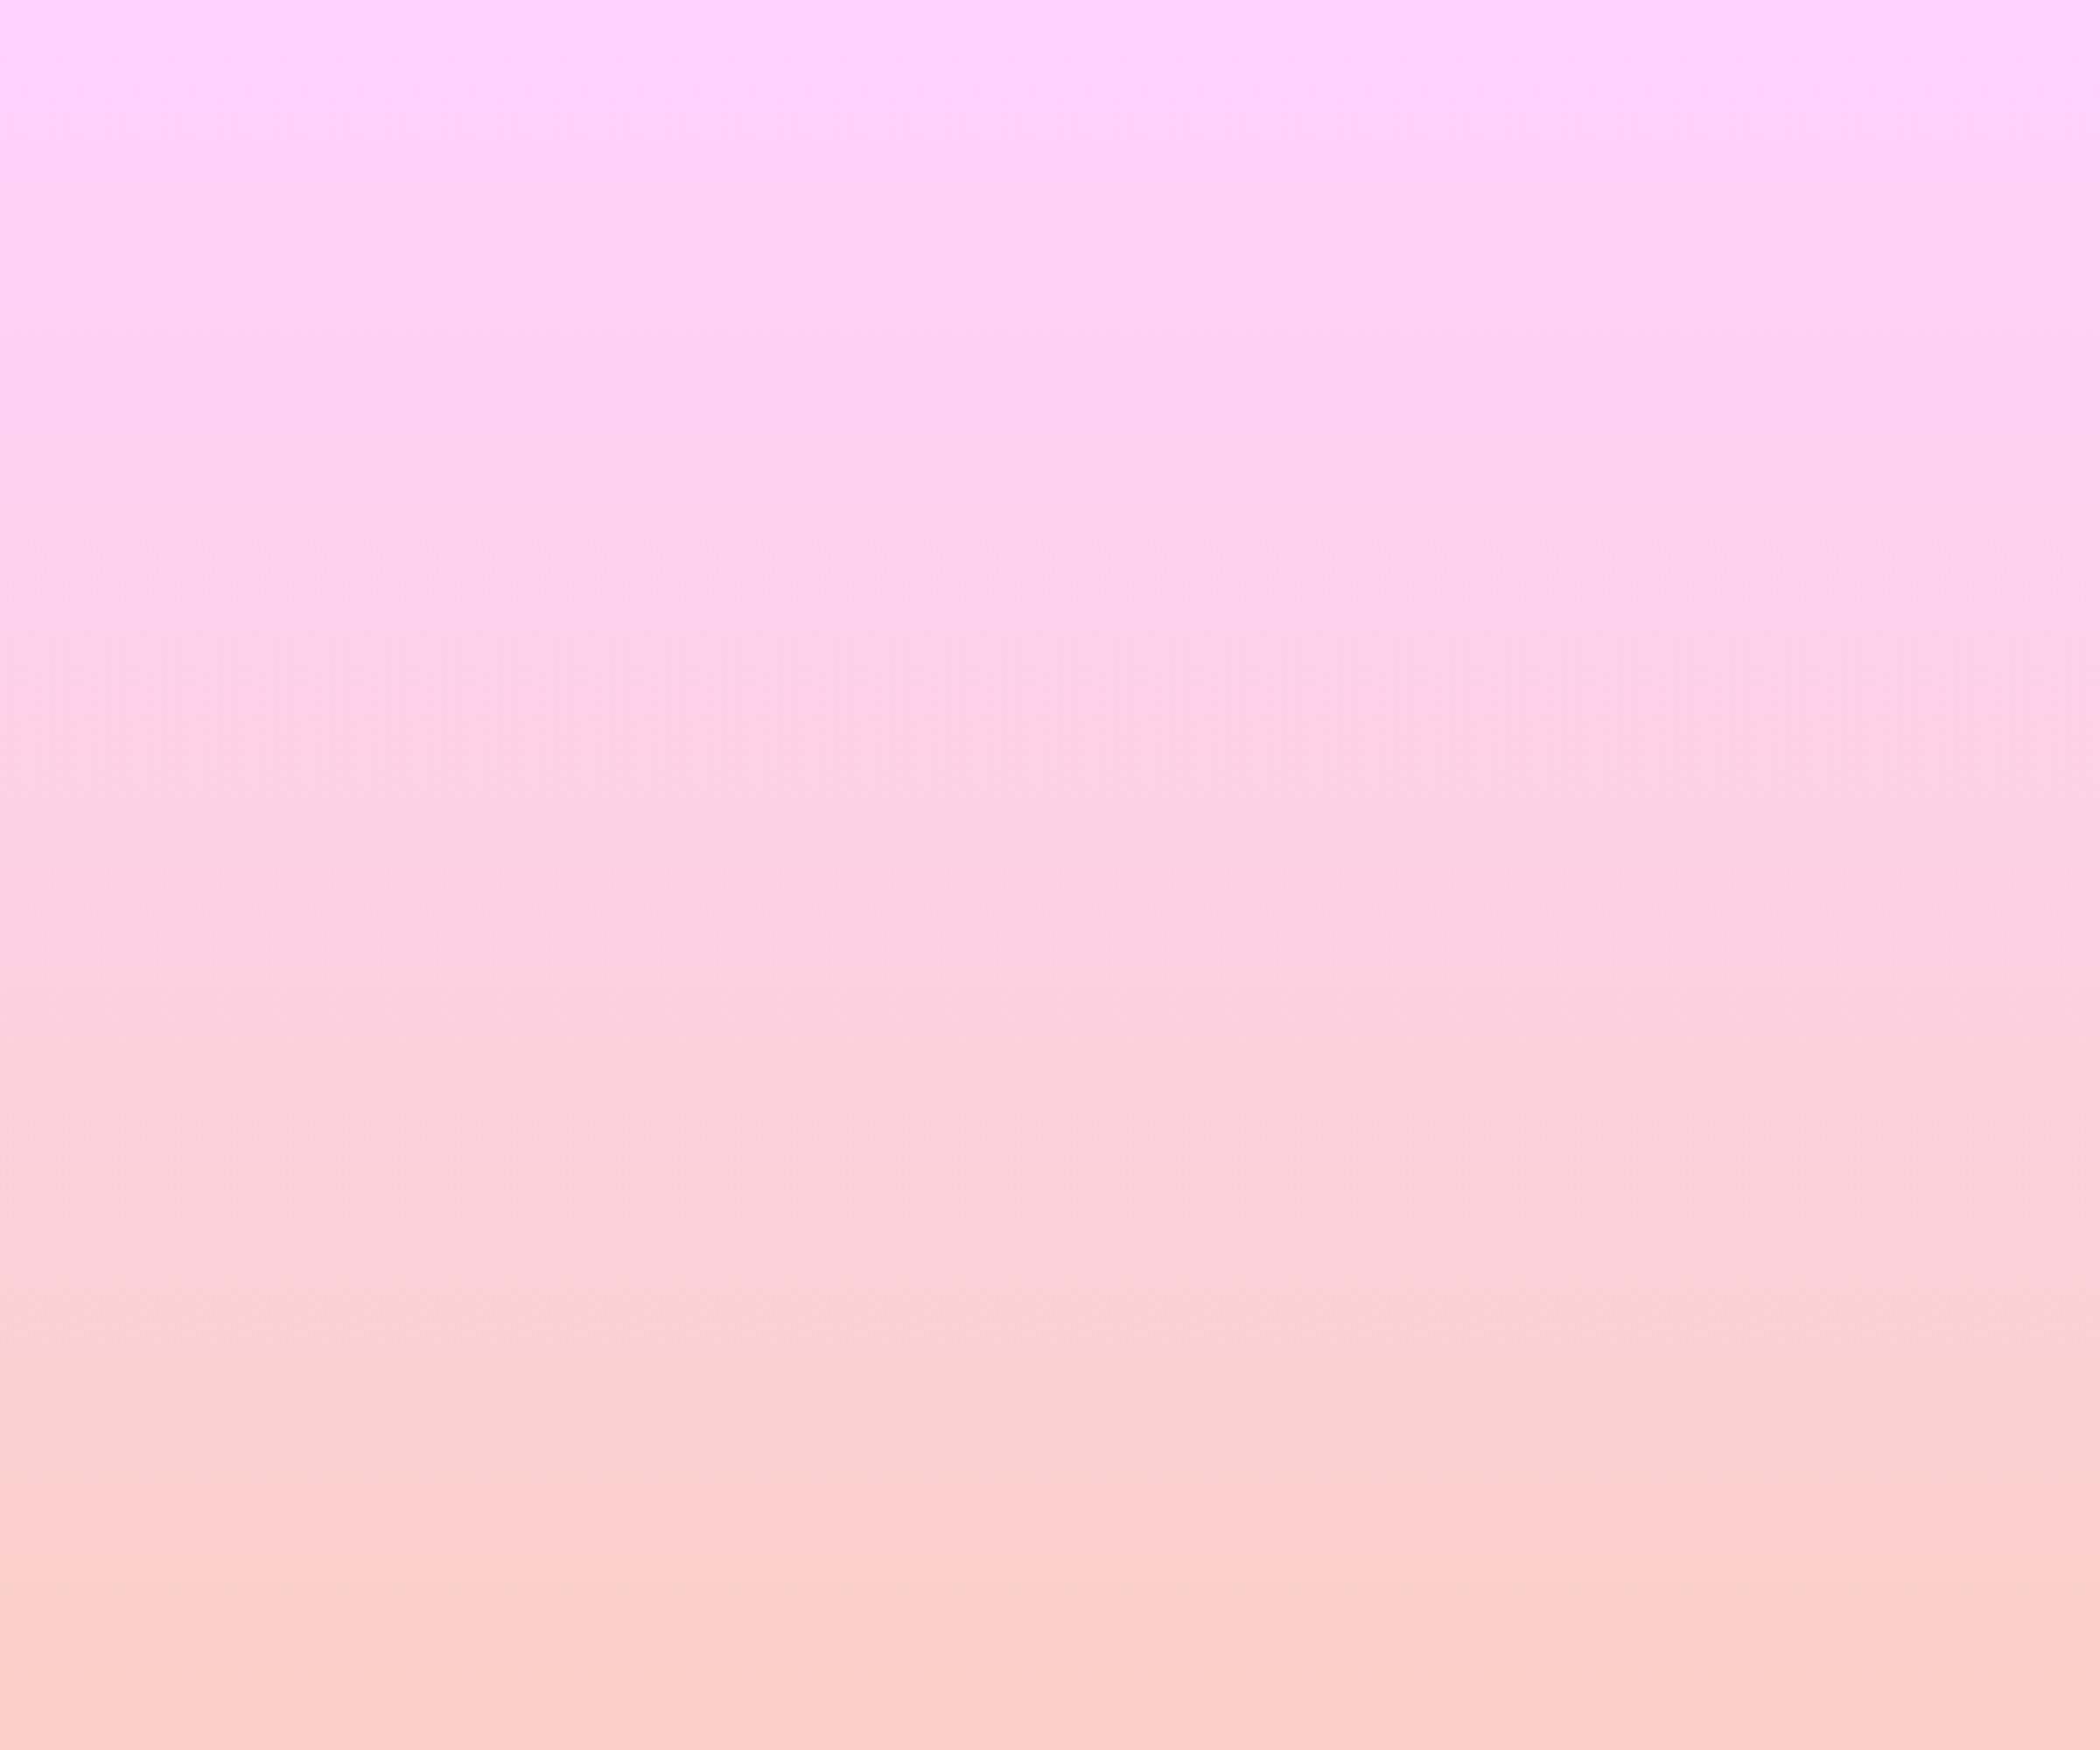 Pastel Gradient Wallpapers Top Free Pastel Gradient